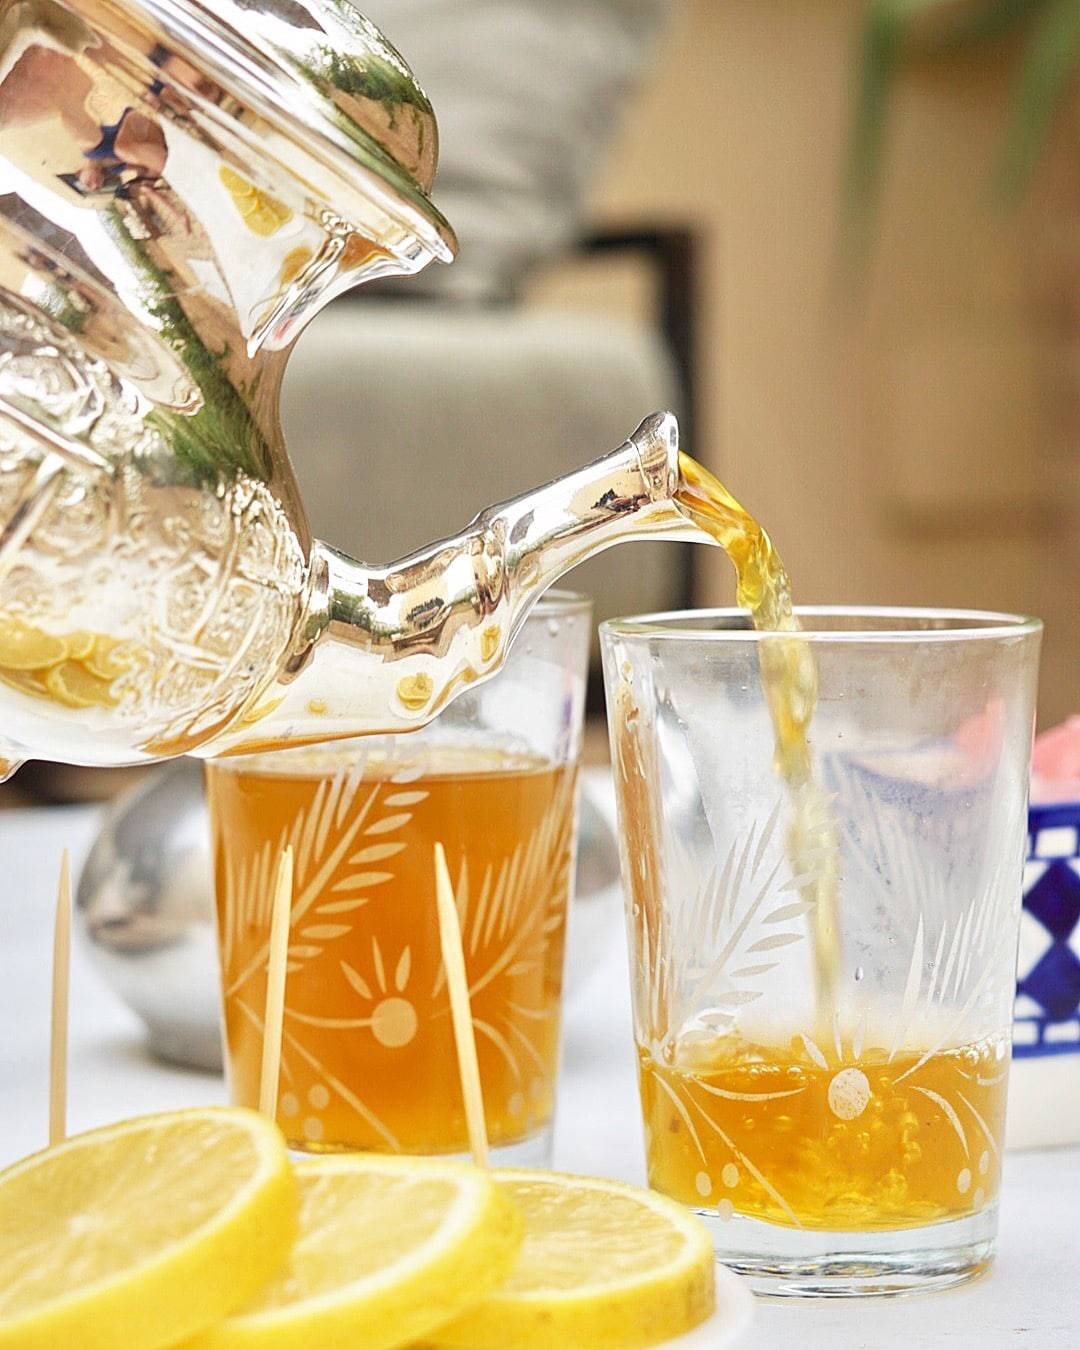 Pouring Moroccan Mint Tea at Riad Fes in Fes, Morocco